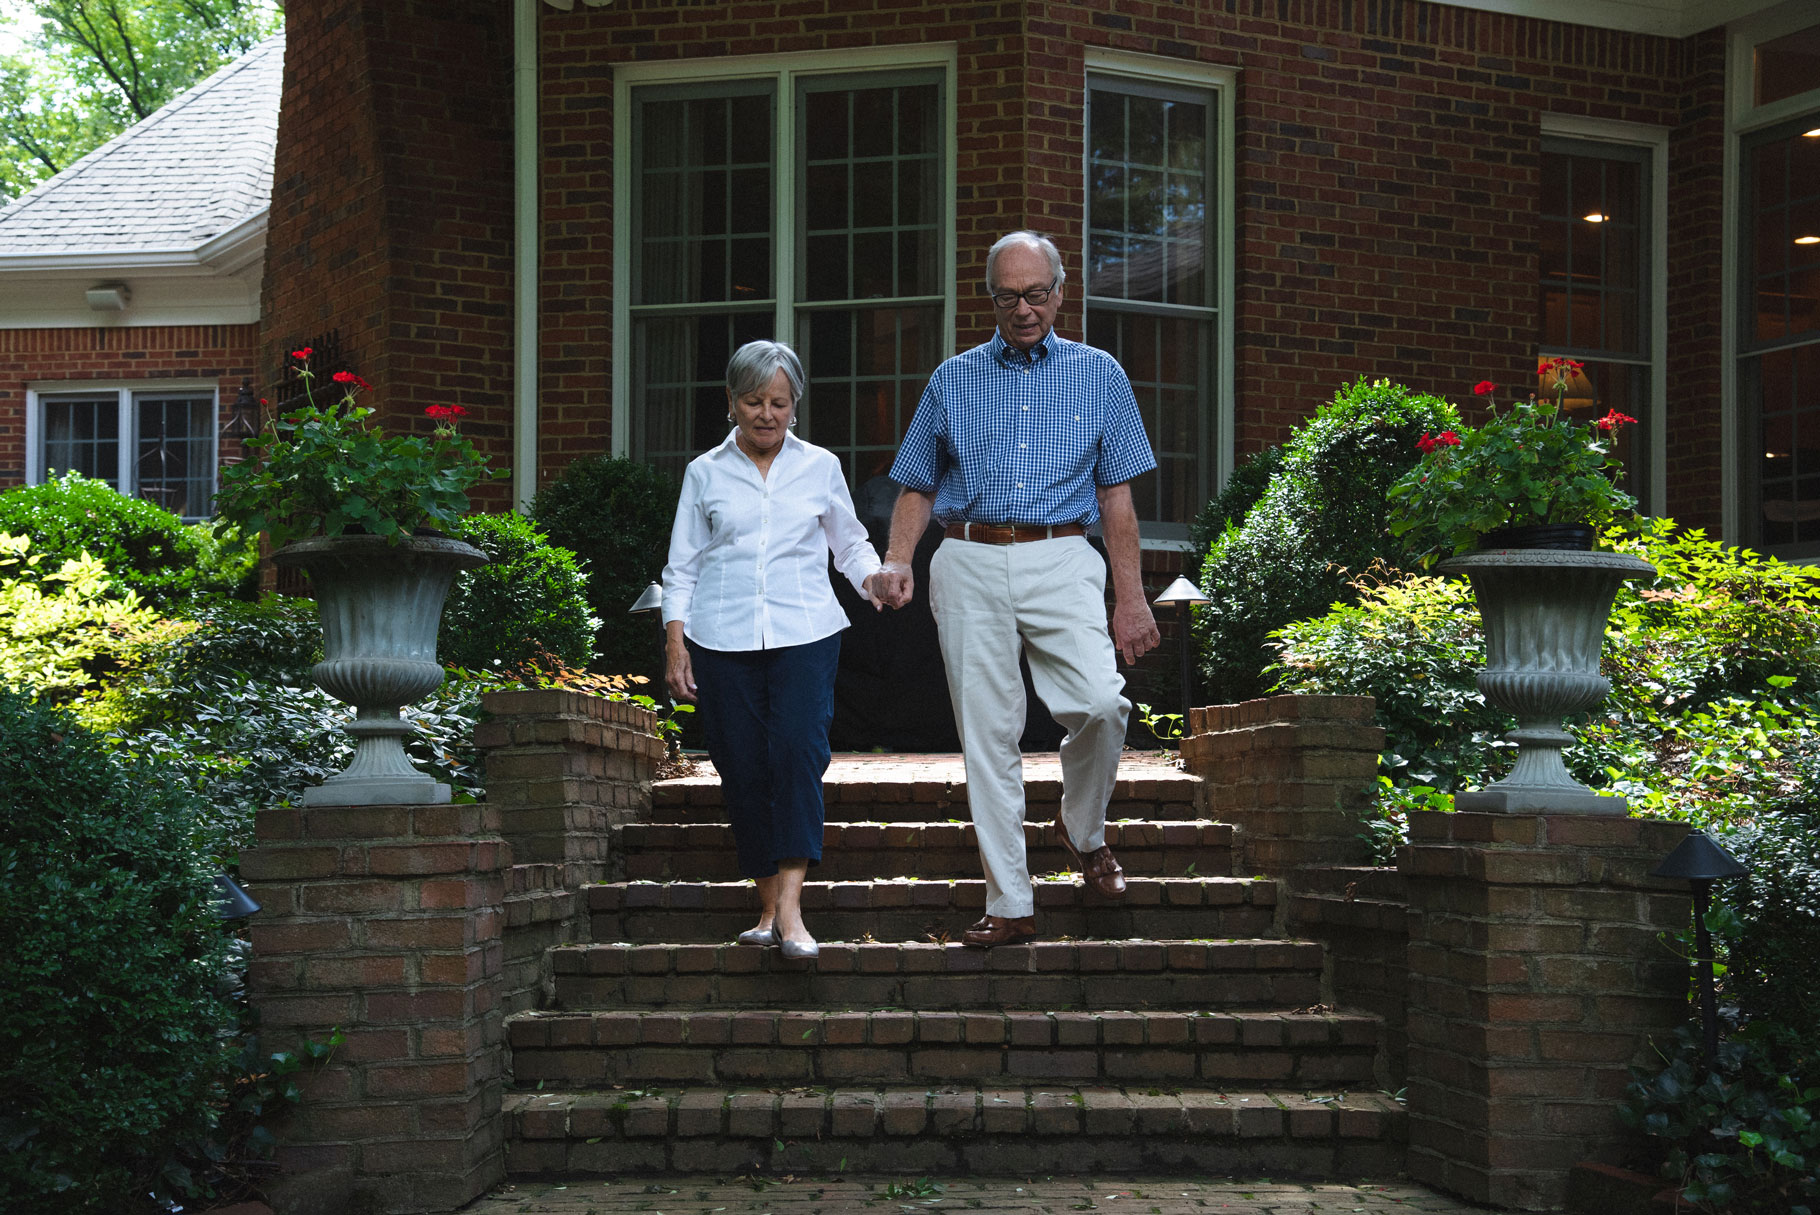 Gayle and her husband hold hands and walk down their front steps.